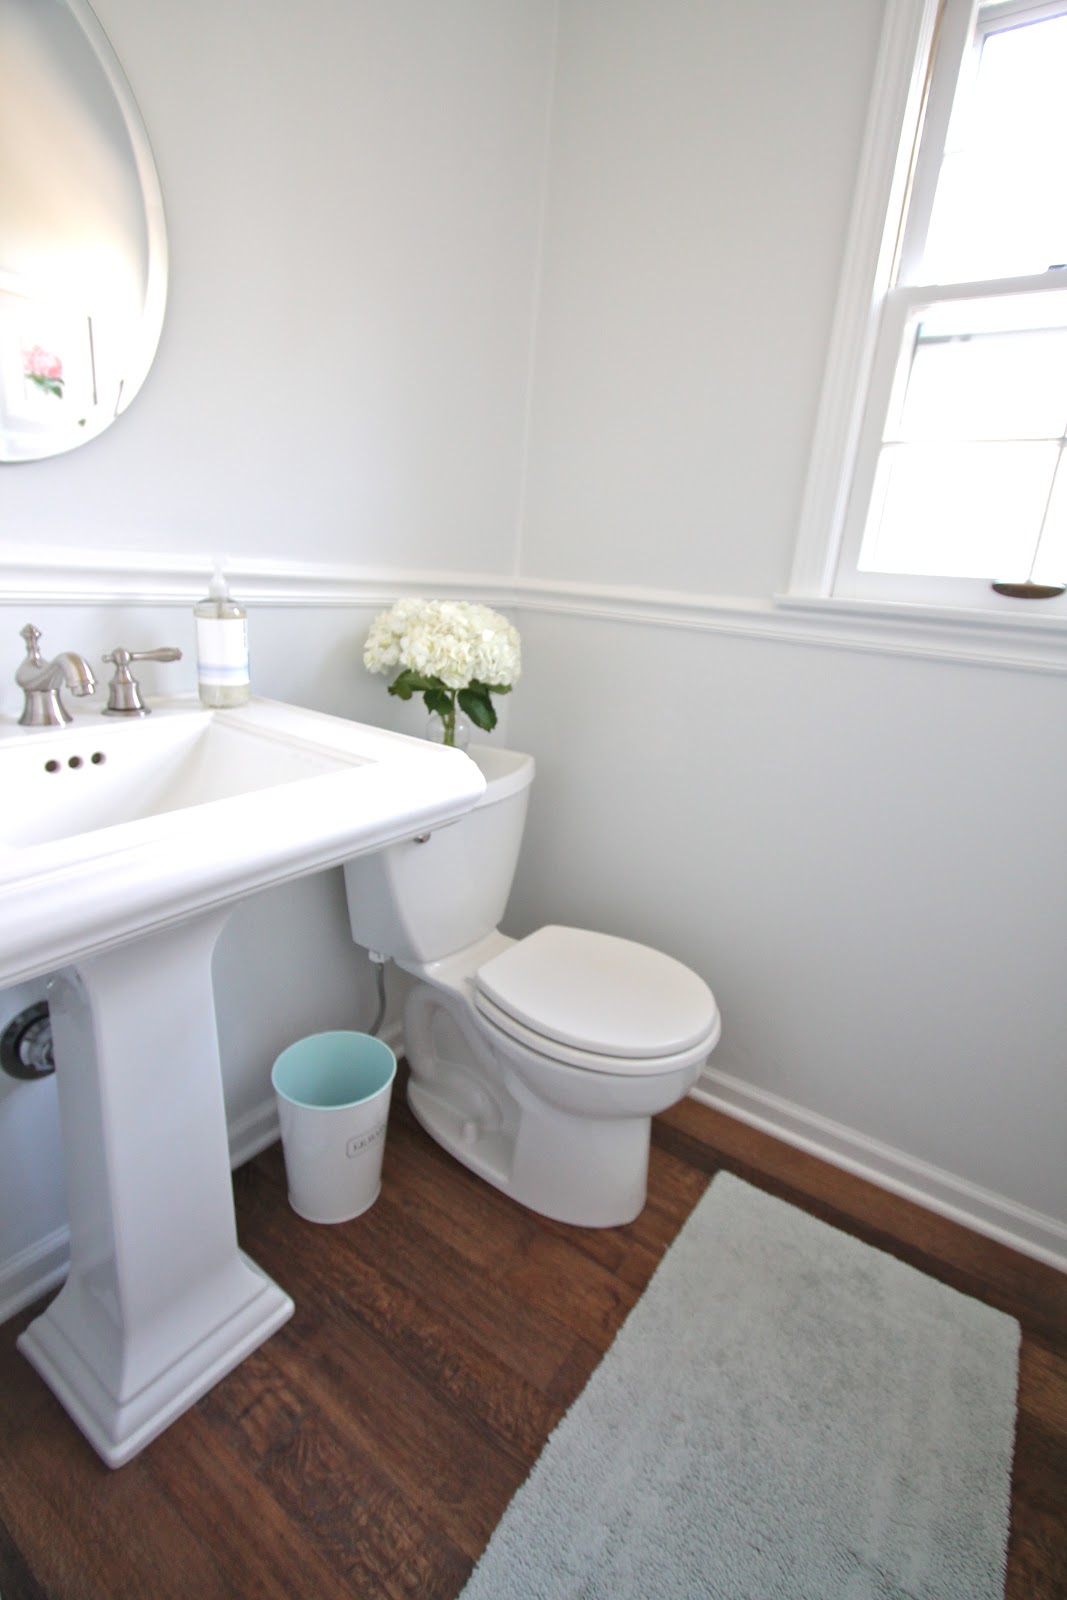 Diy bathroom remodel julie blanner - Half bath remodel ideas ...